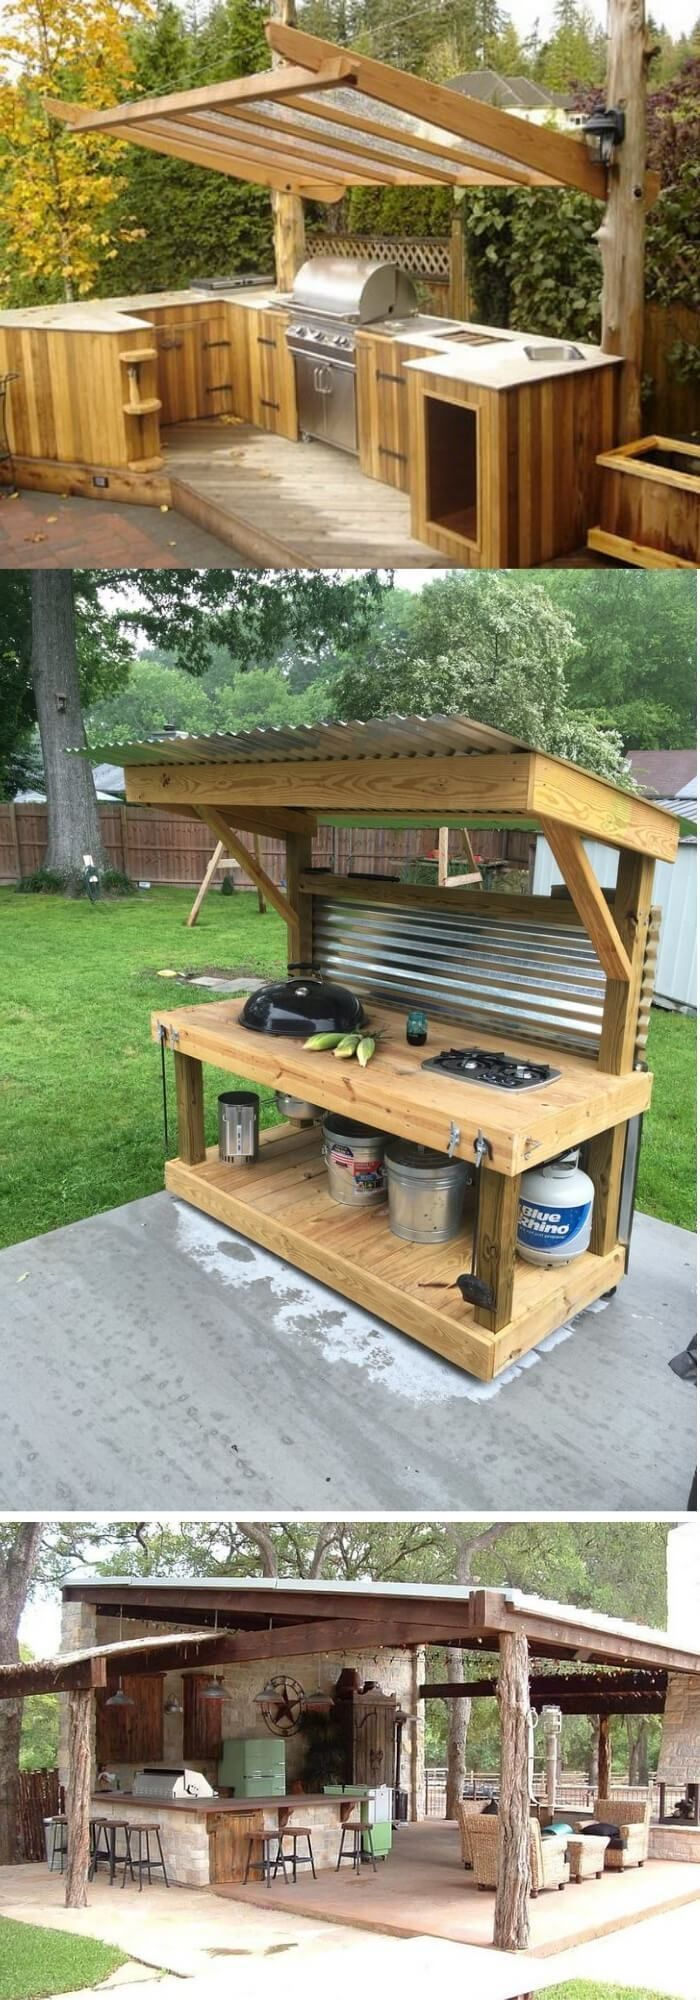 45 Awesome Outdoor Kitchen Ideas And Design Pandriva Diy Outdoor Kitchen Pallet Furniture Outdoor Outdoor Diy Projects